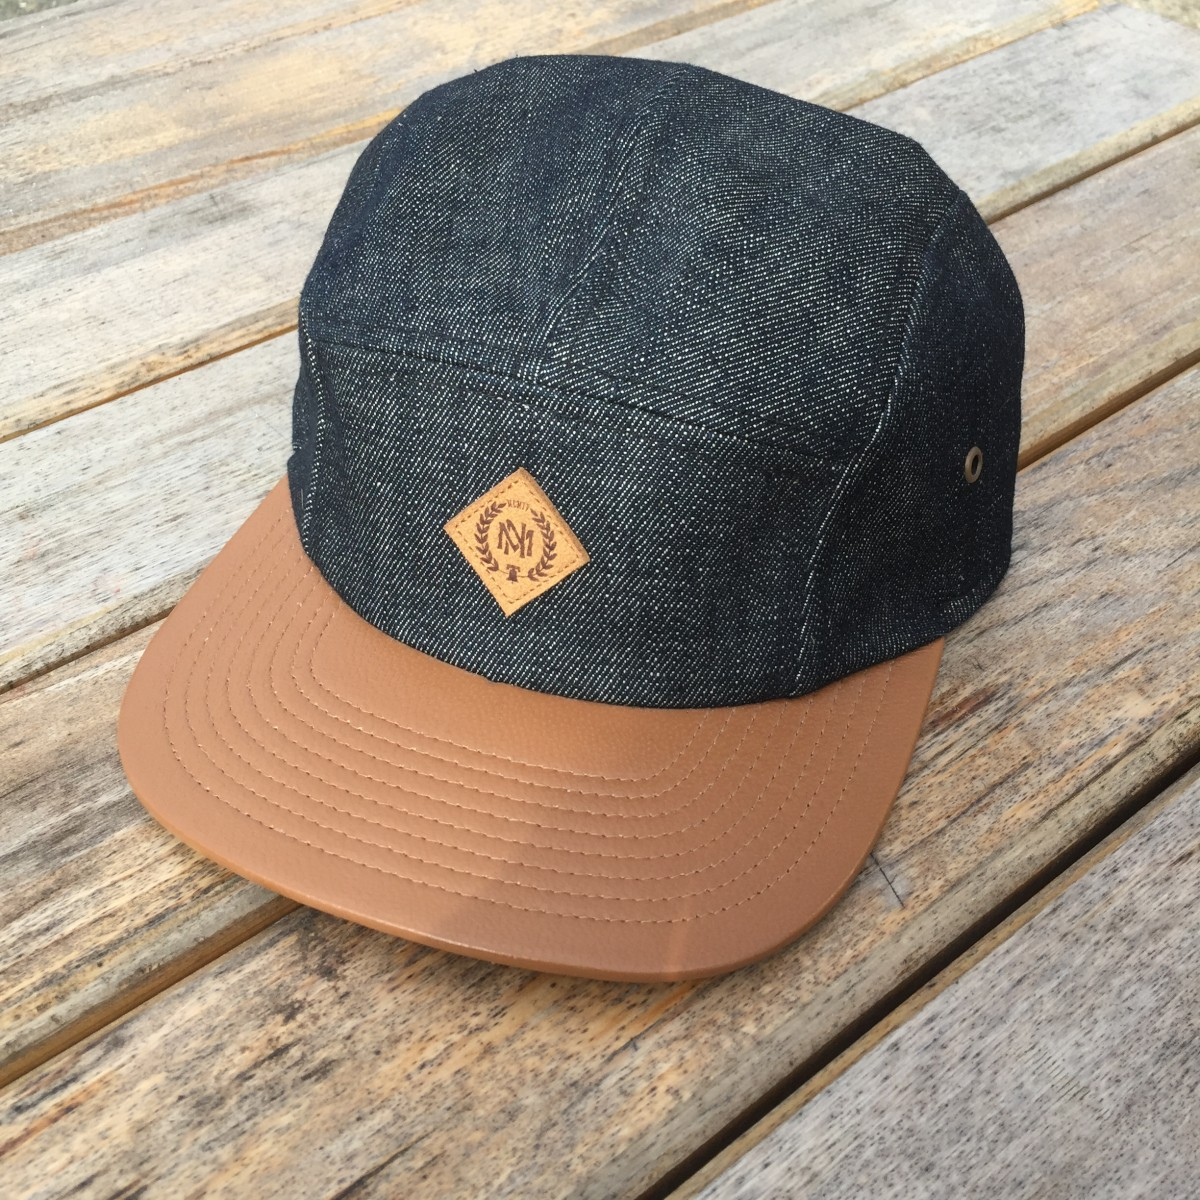 Casquette mitchell & ness 5 panel jean & cuir